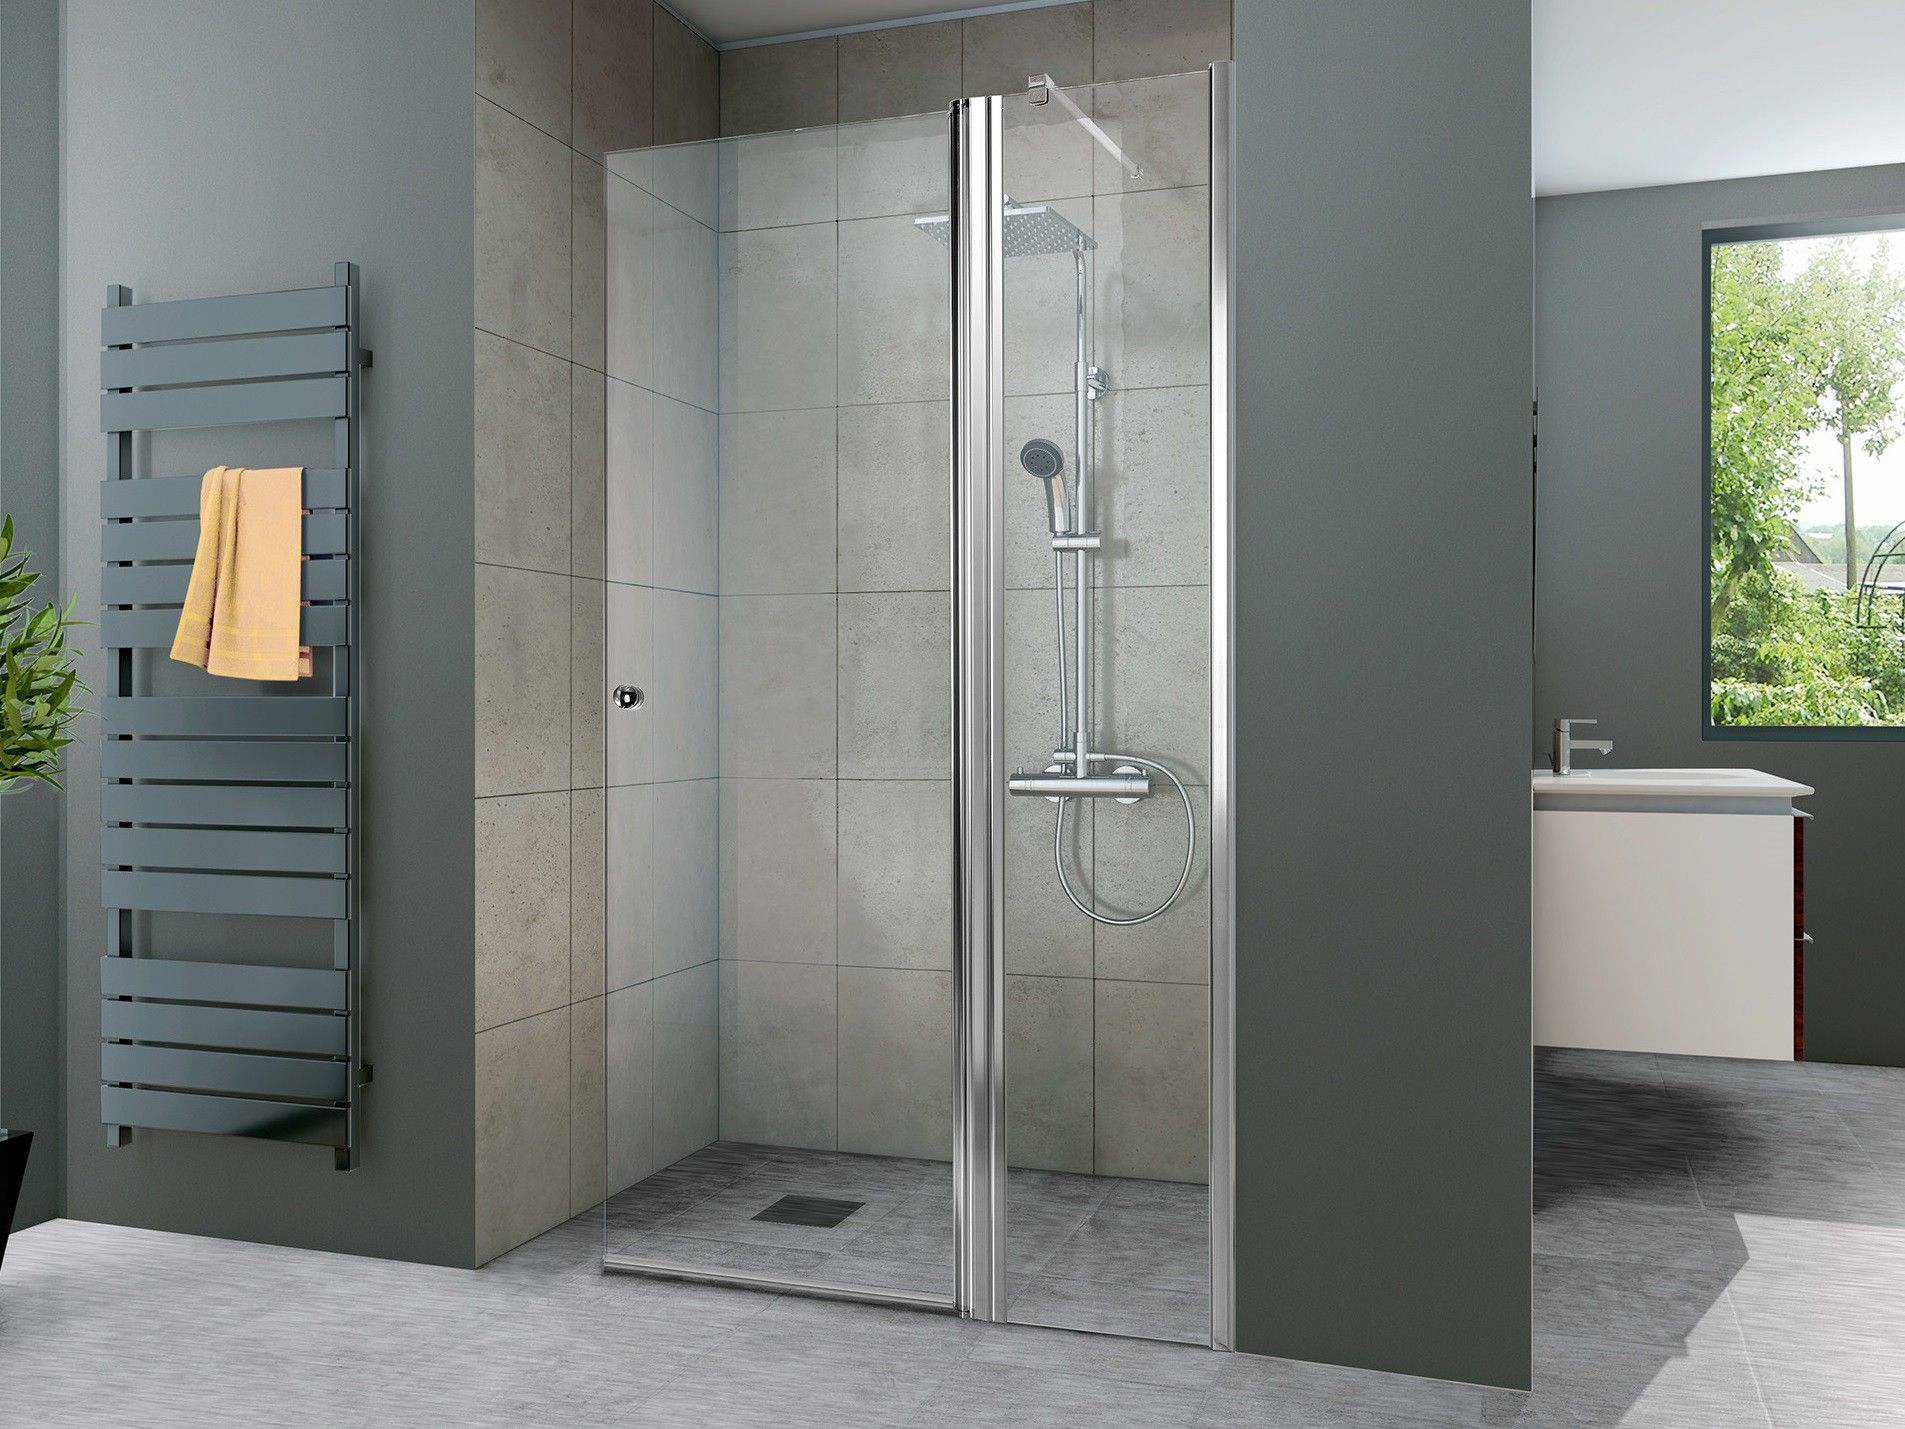 Walk In Dusche Pendeltur 100 X 220 Cm Bad Design Heizung Bathtub Room Divider Bathroom